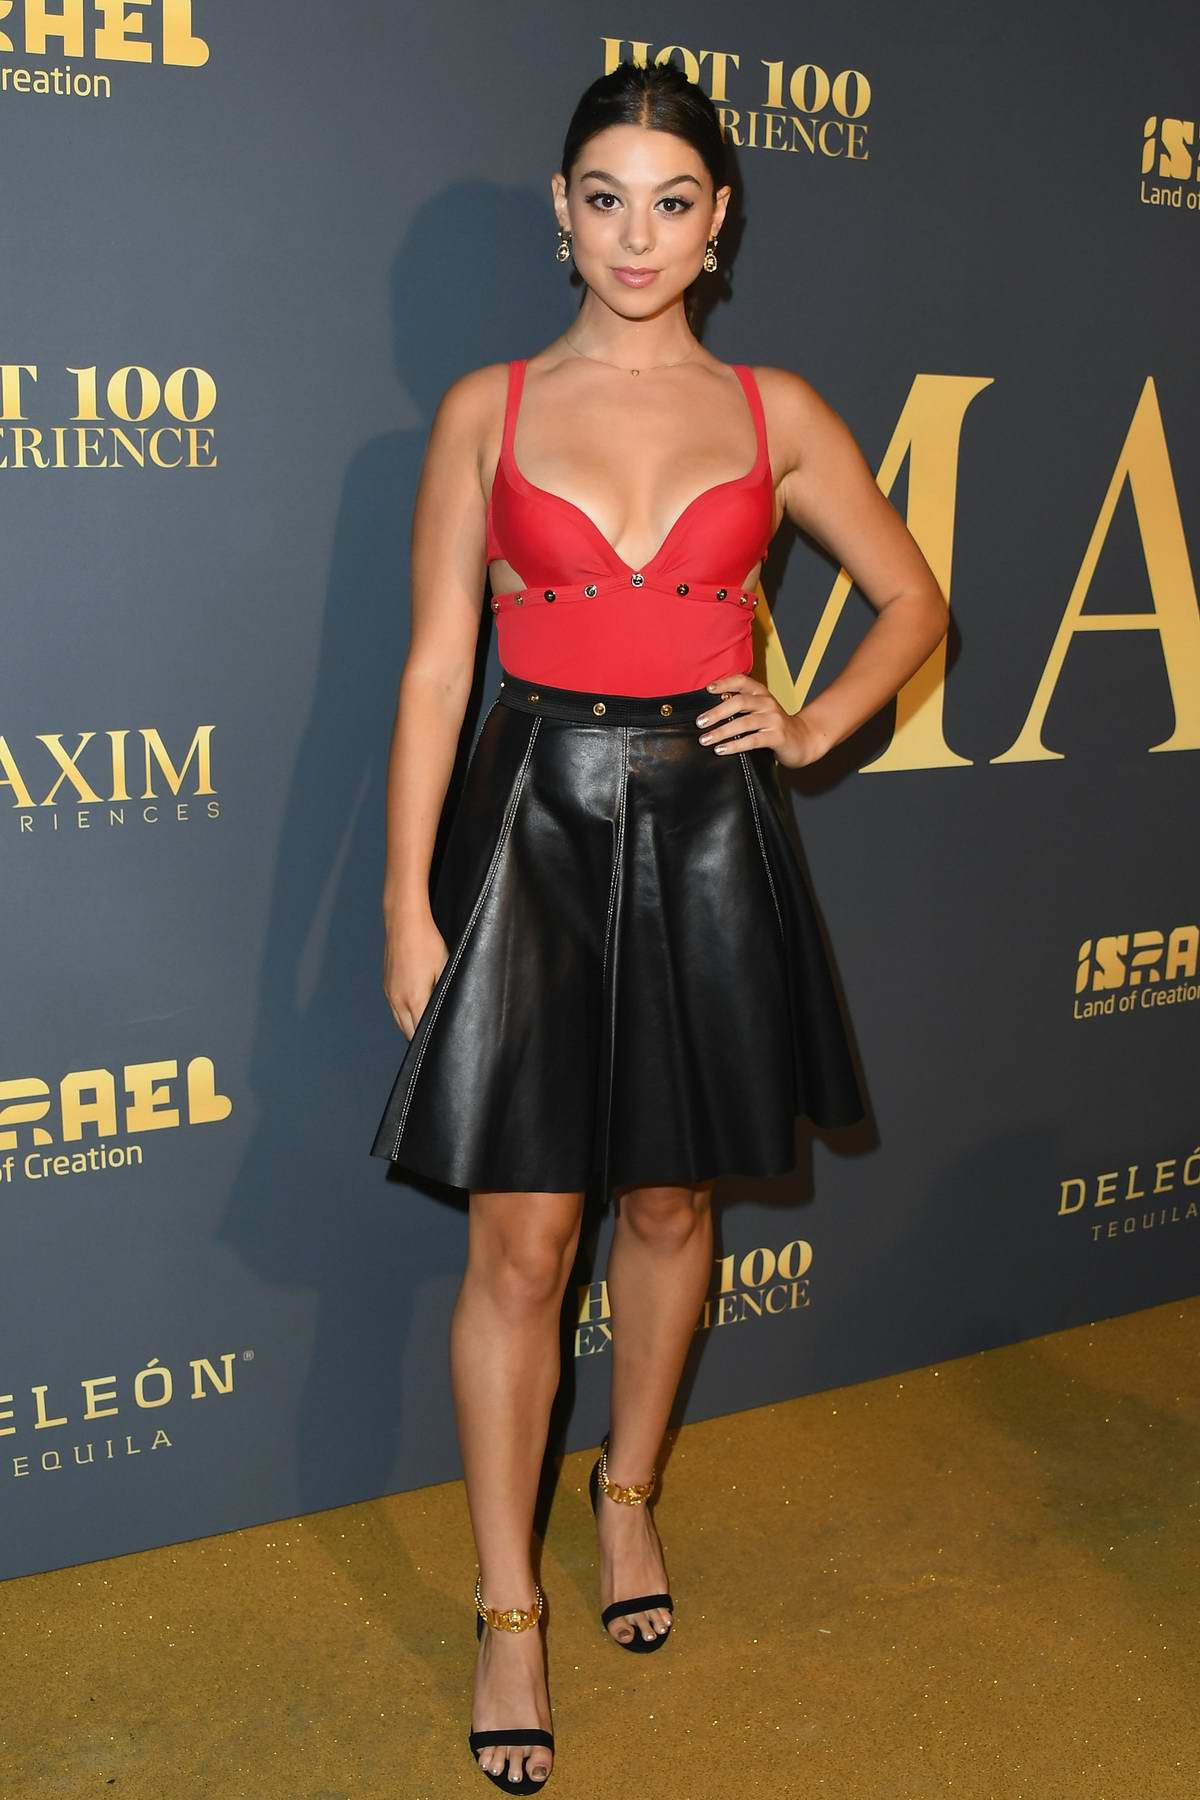 Kira Kosarin attends the MAXIM Hot 100 Experience at Hollywood Palladium in Los Angeles